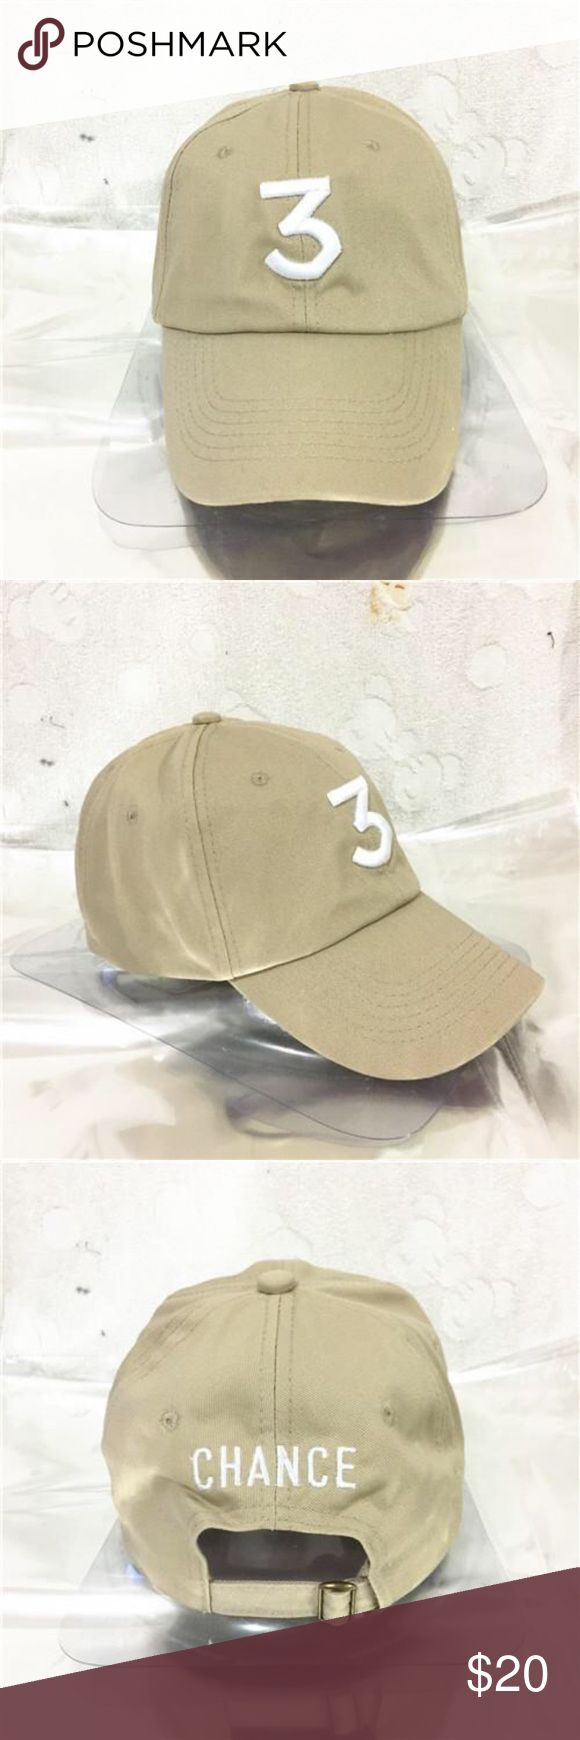 **CHANCE 3 THE RAPPER KANYE WEST BASEBALL CAP STYLISH NEVER BEEN WORN, MINT CONDITION CHANCE THE RAPPER HAT IN LIGHT KHAKI /TAN  WITH ADJUSTABLE BACK Kanye West Accessories Hats